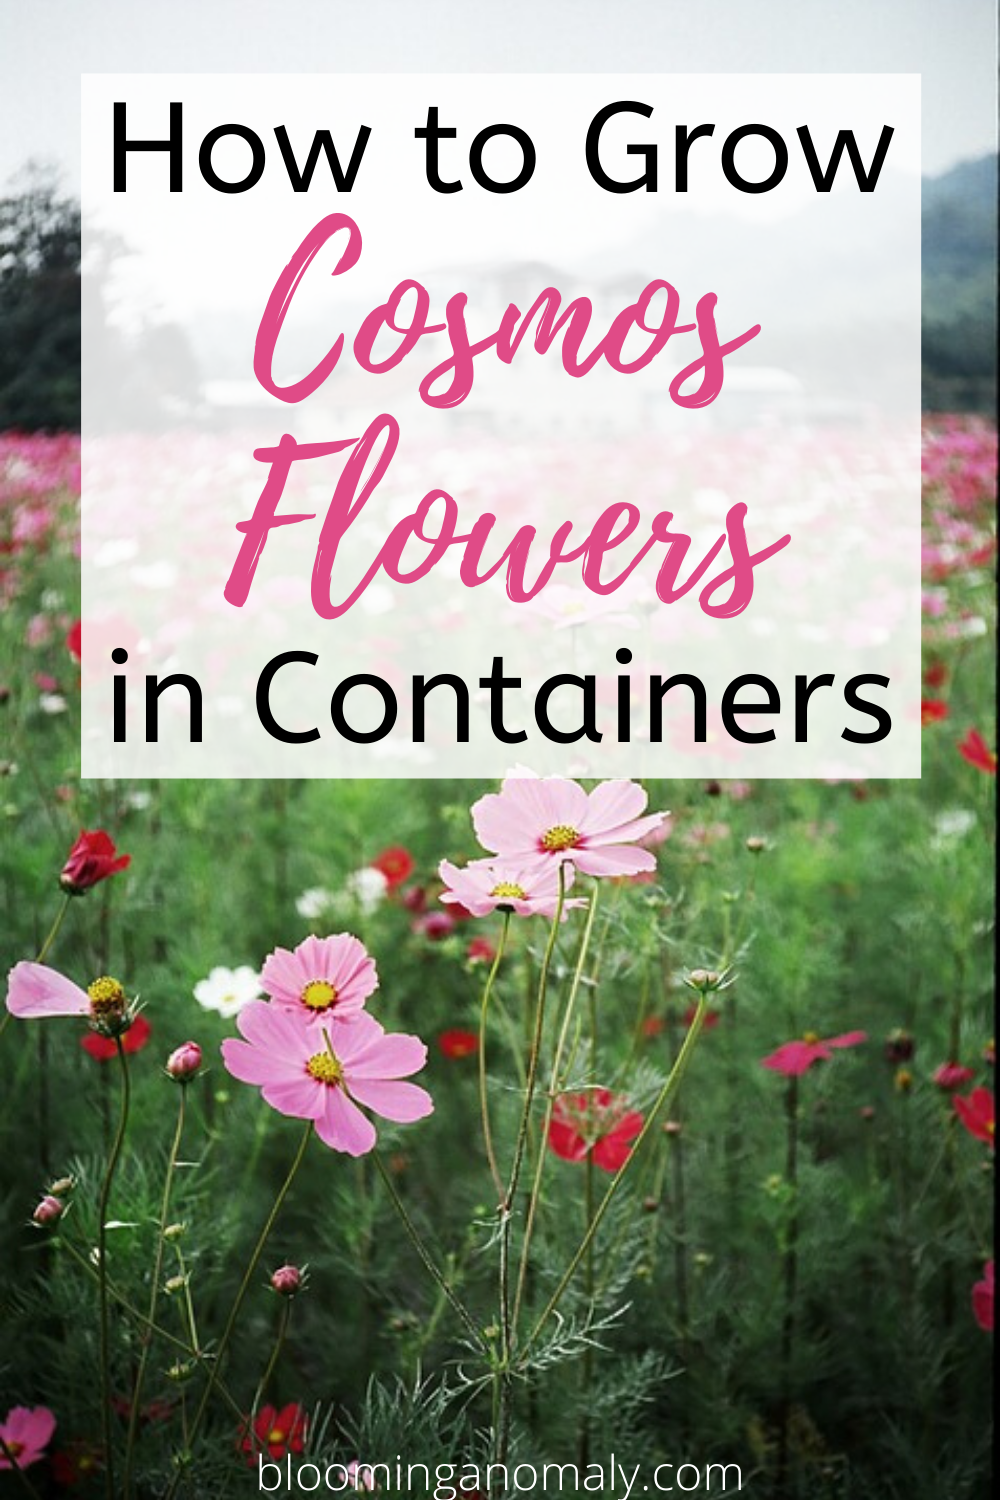 How To Grow Cosmos Flowers In Containers In 2020 Cosmos Flowers Cosmos Flowers Garden Container Flowers